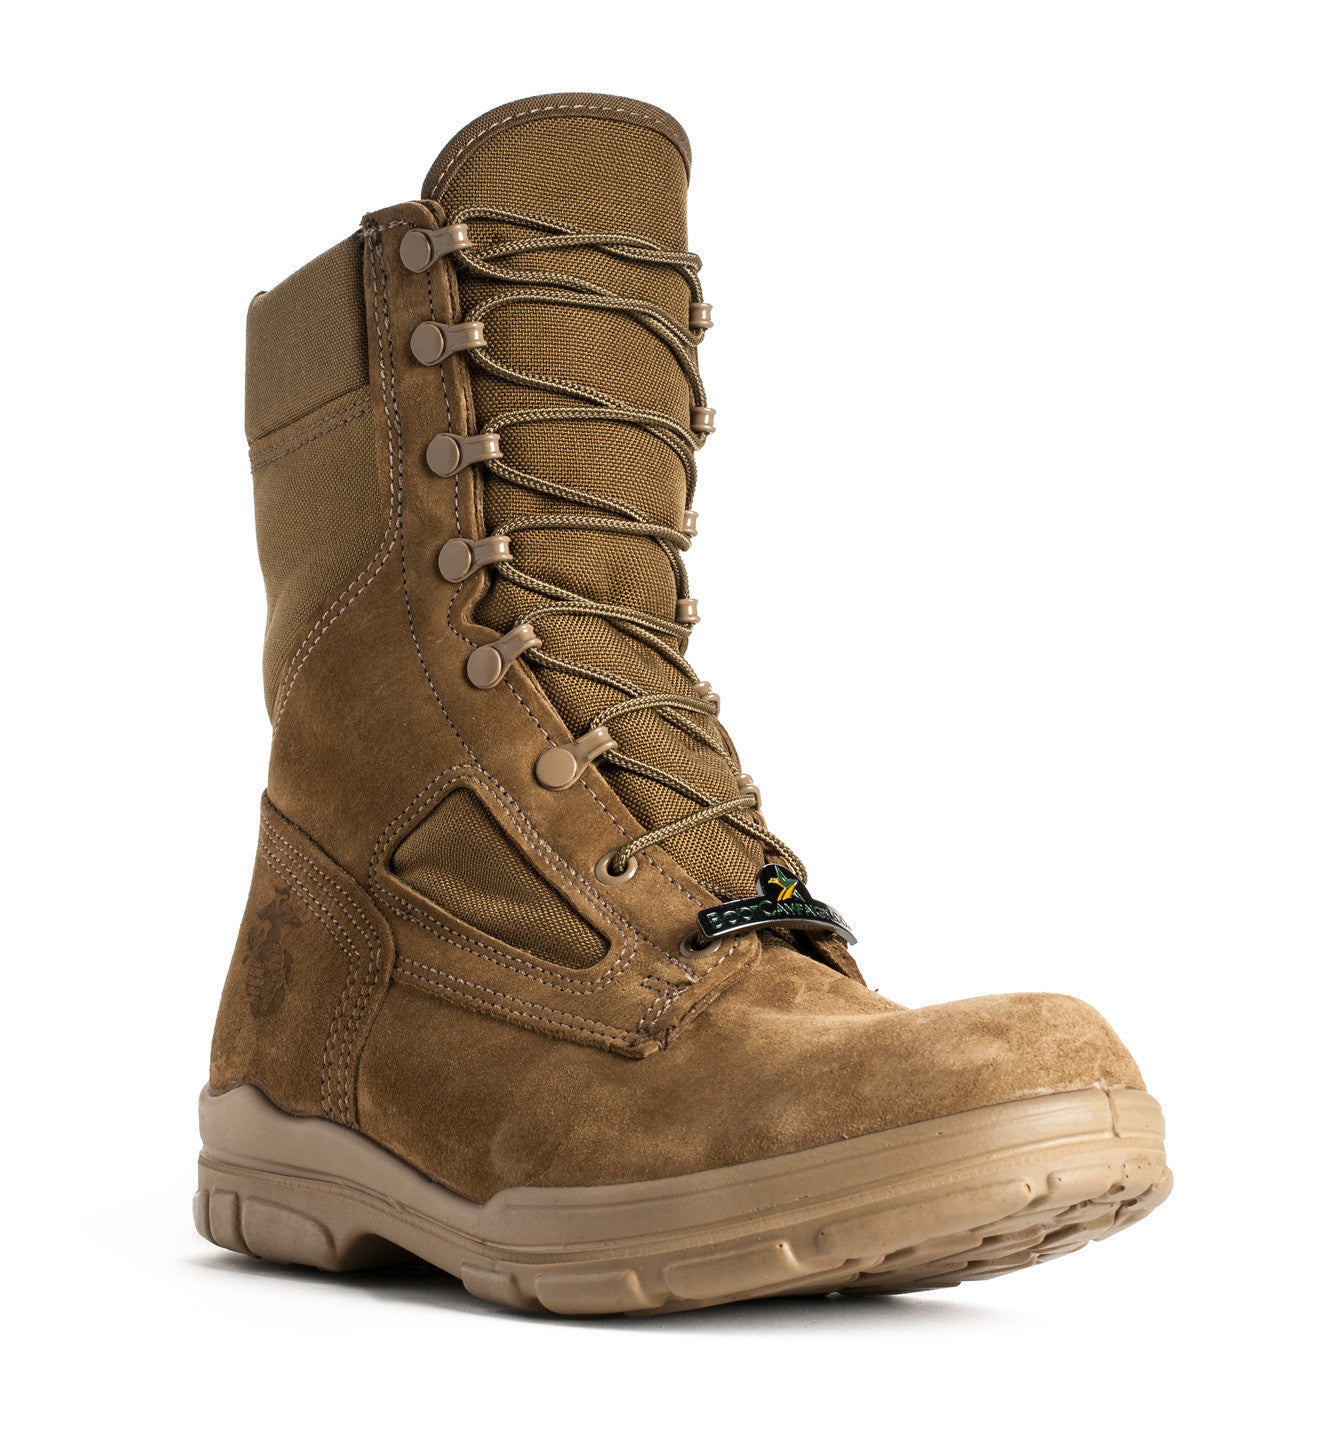 USMC Lightweight DuraShocks Boot Womens